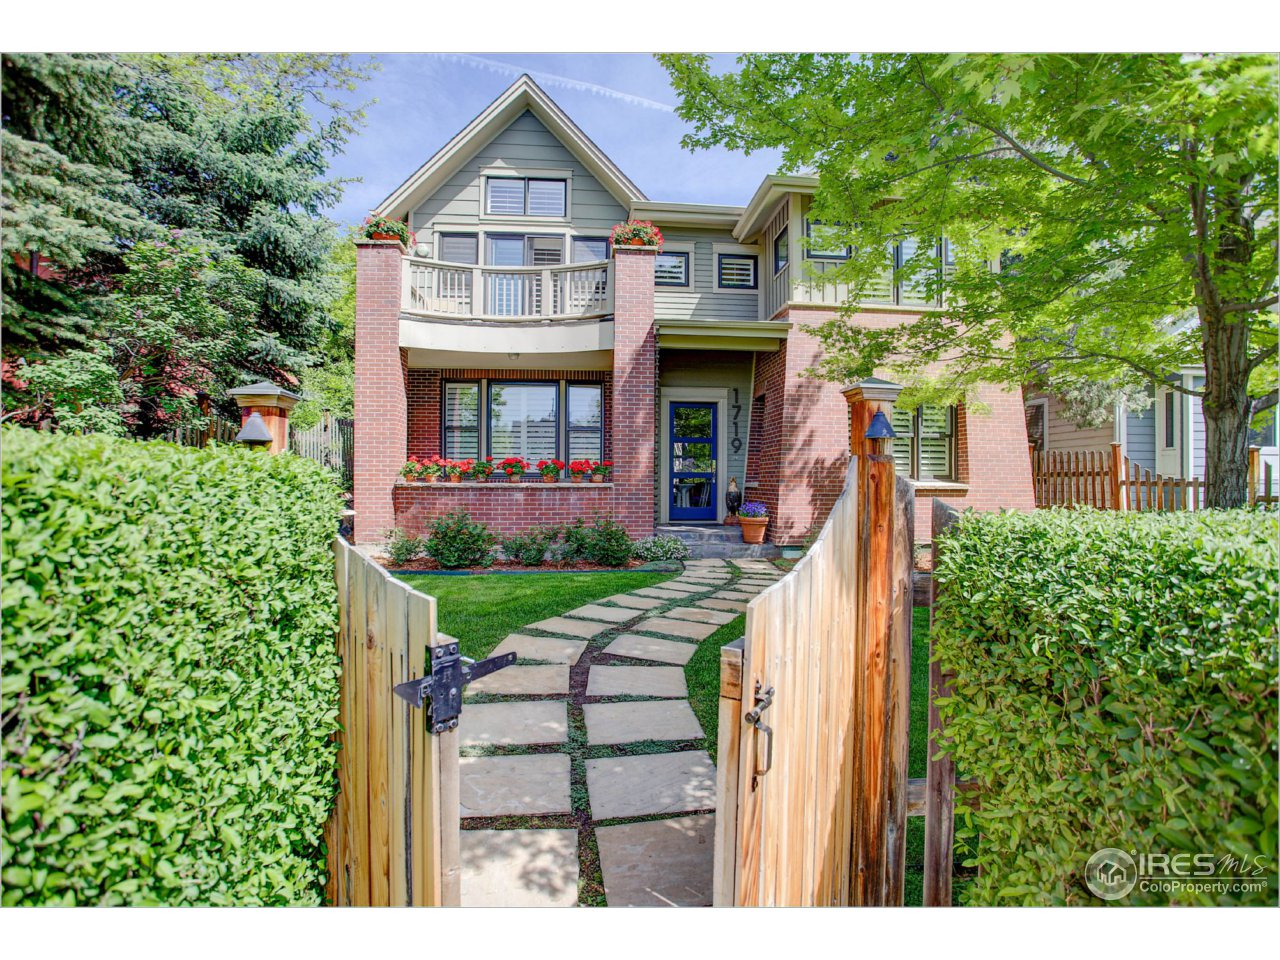 1719 Mapleton Ave, Boulder CO 80304